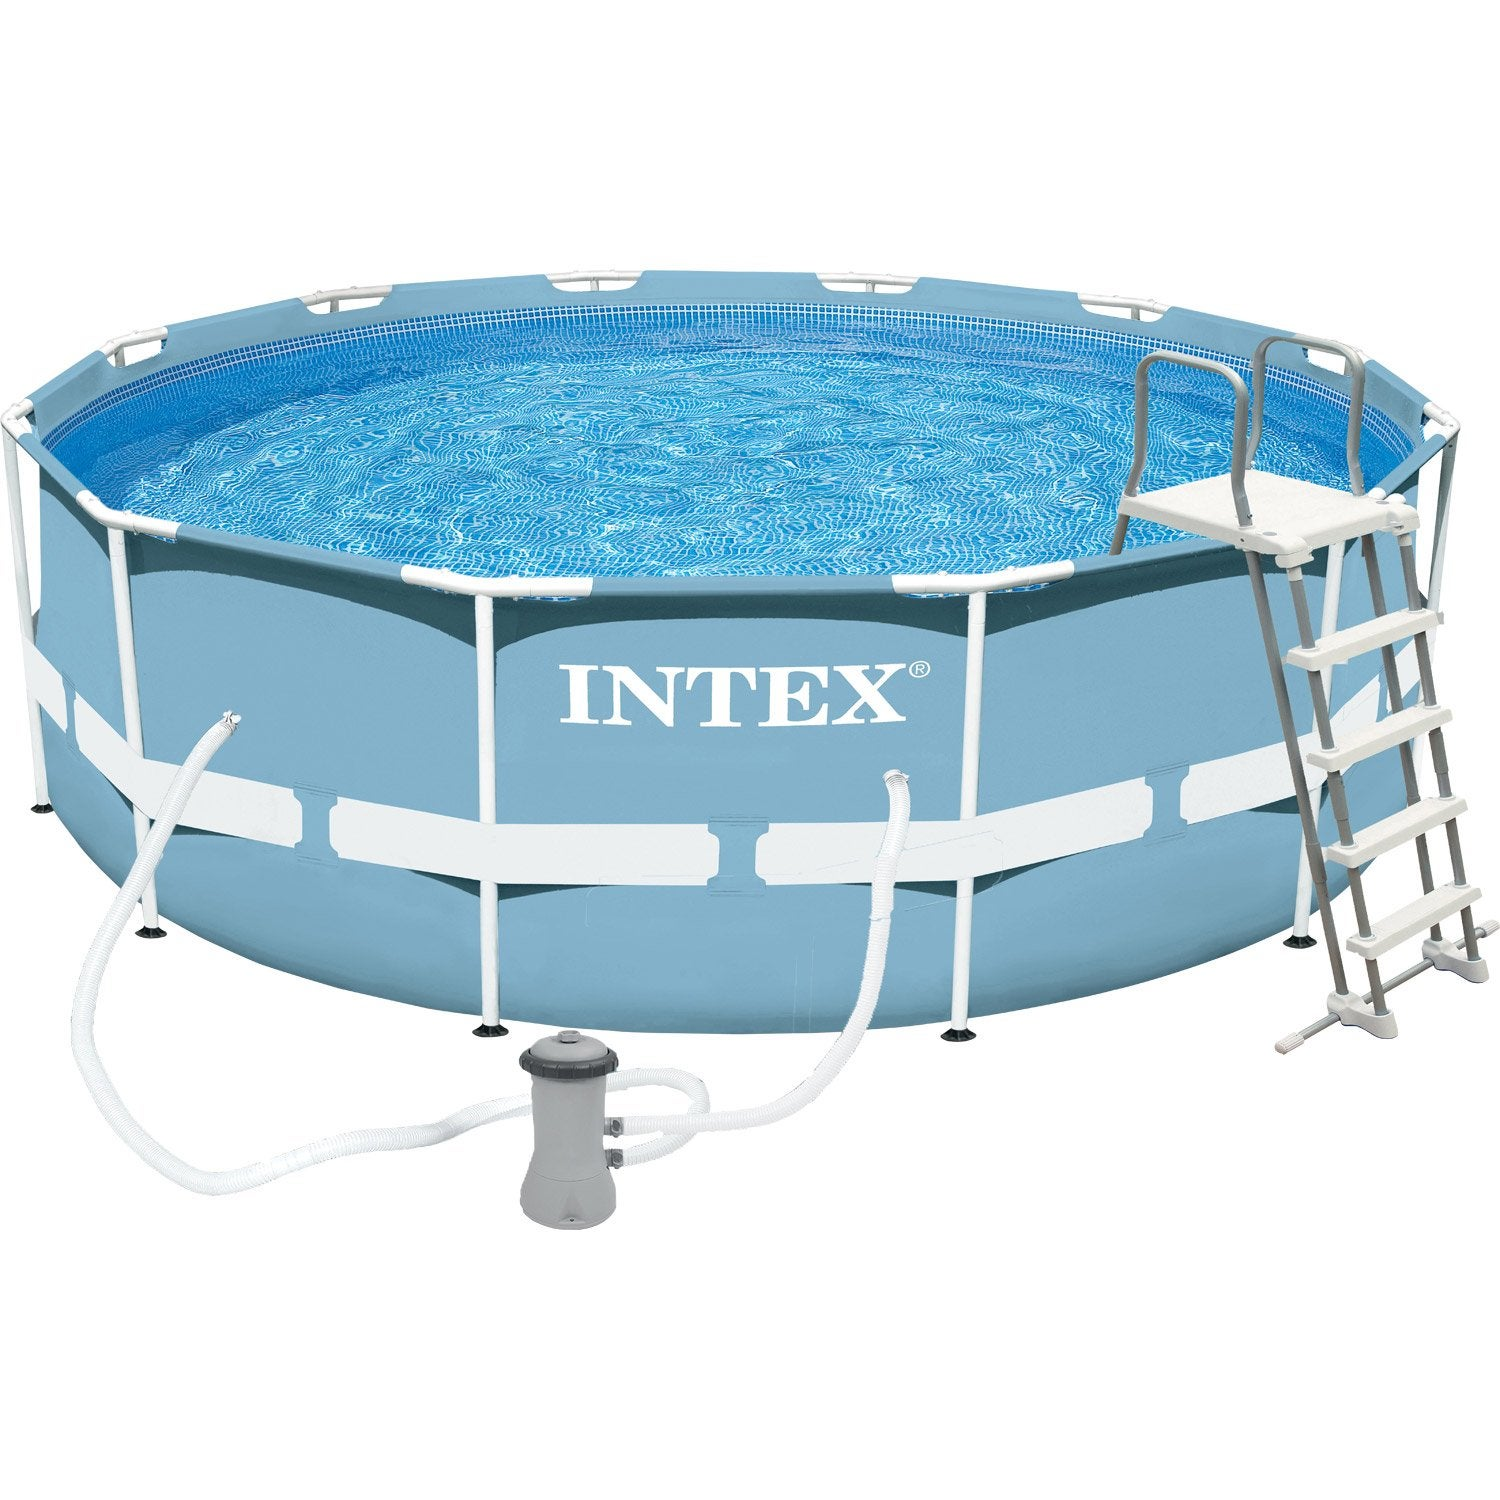 Piscine hors sol autoportante tubulaire prism frame intex for Piscine hexagonale hors sol